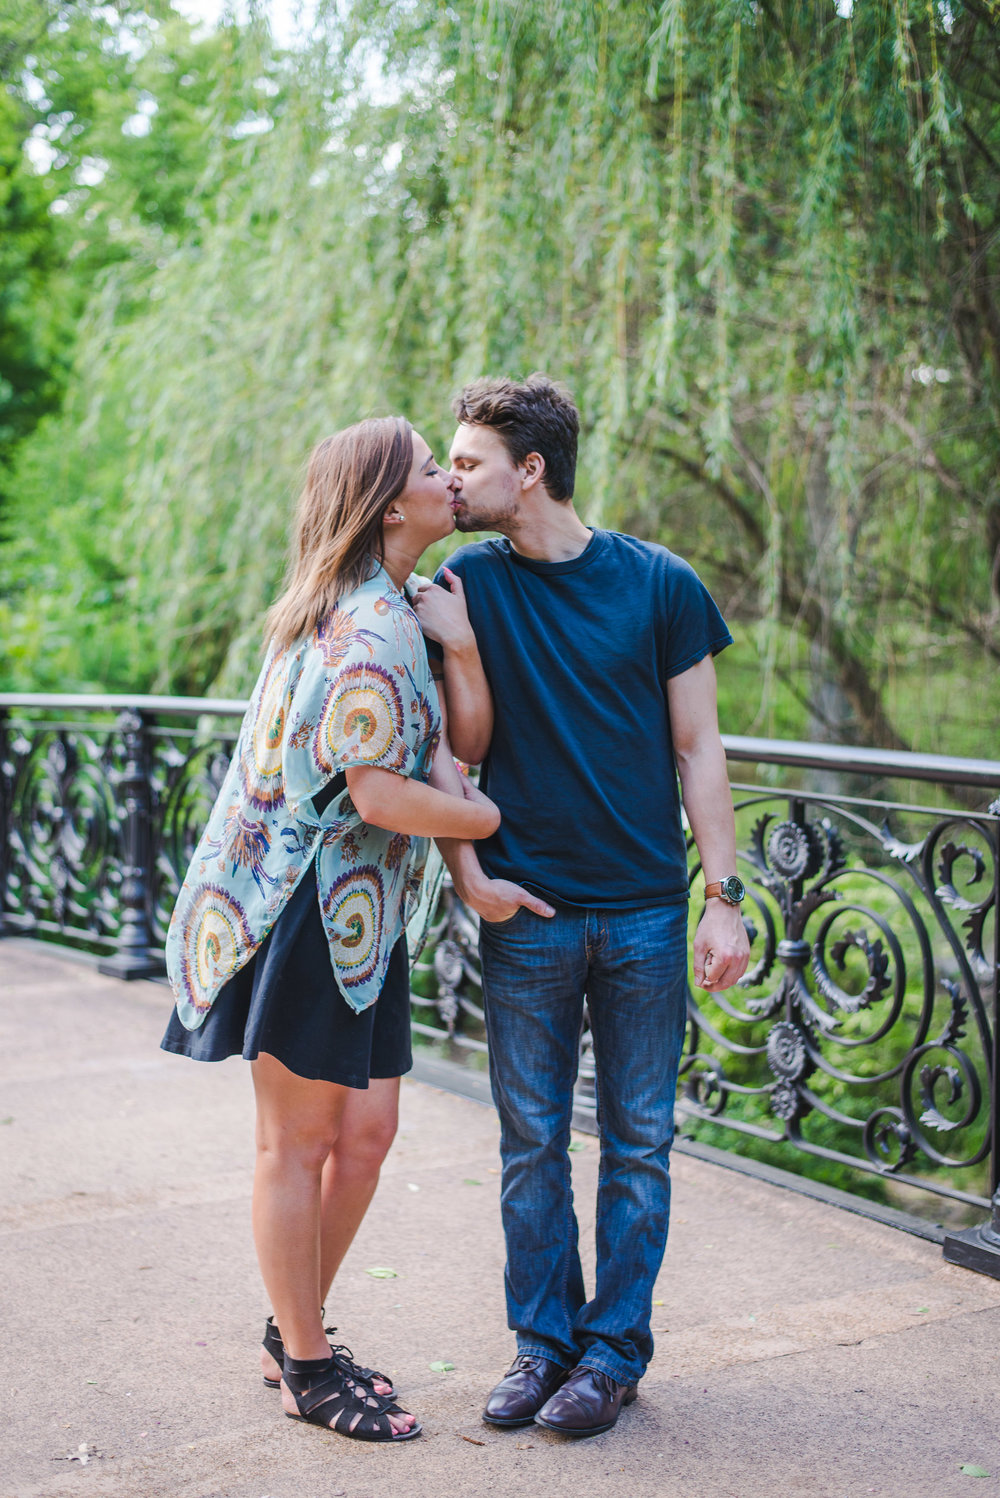 Couples portrait photography session in Lafayette Square Park in St. Louis. Black iron historic bridge and willows in the background.